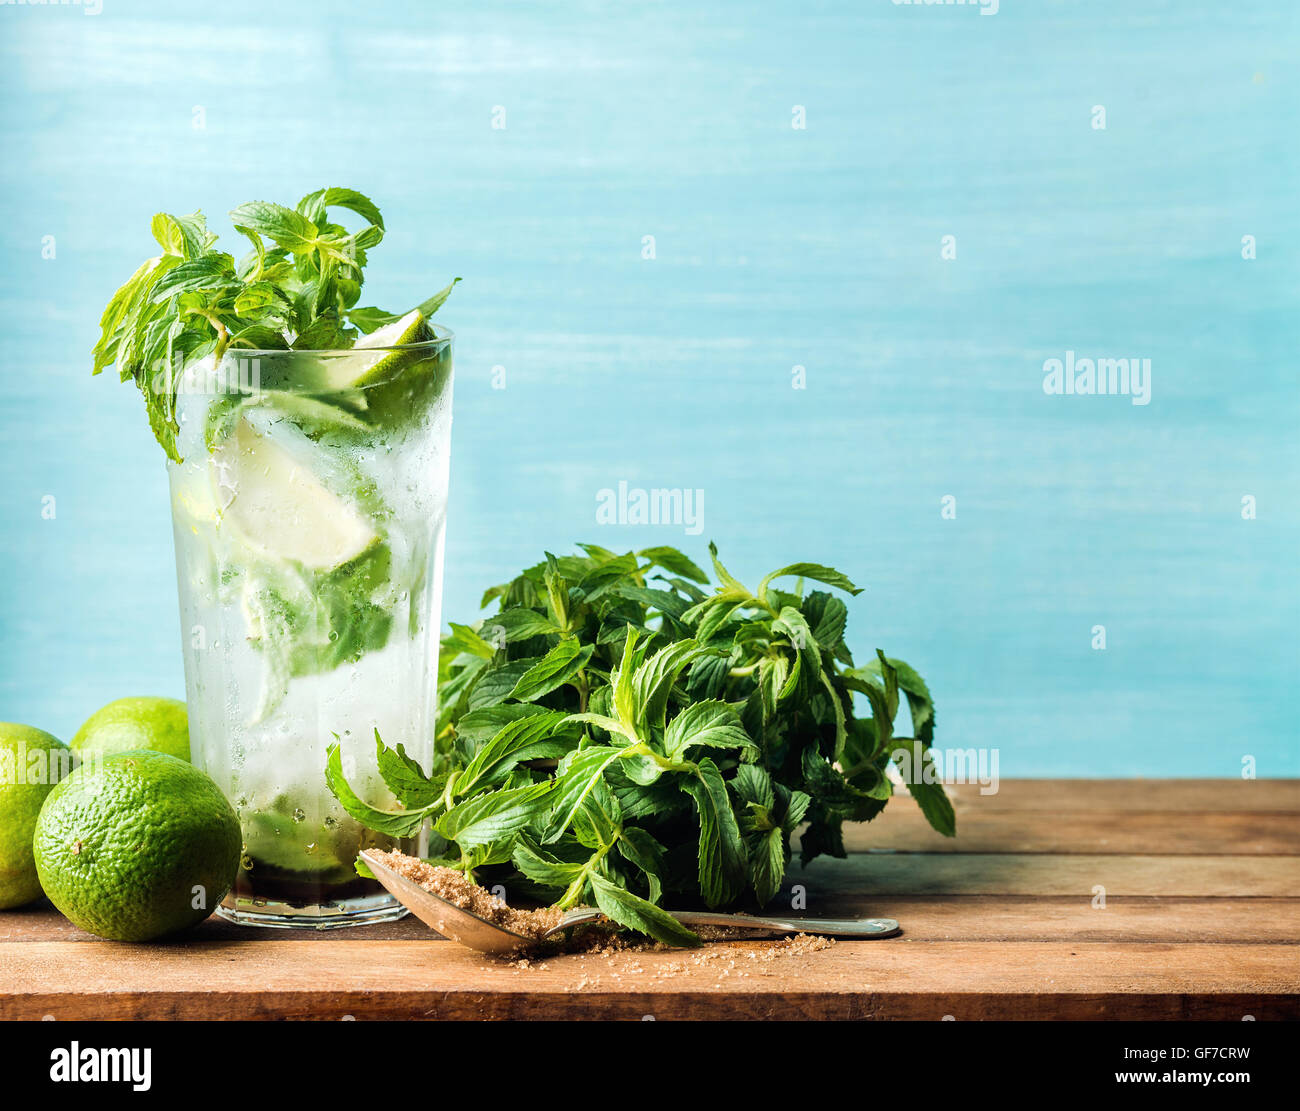 Mojito cocktail in tall glass with mint, brown sugar and limes on a wooden table. Selective focus - Stock Image